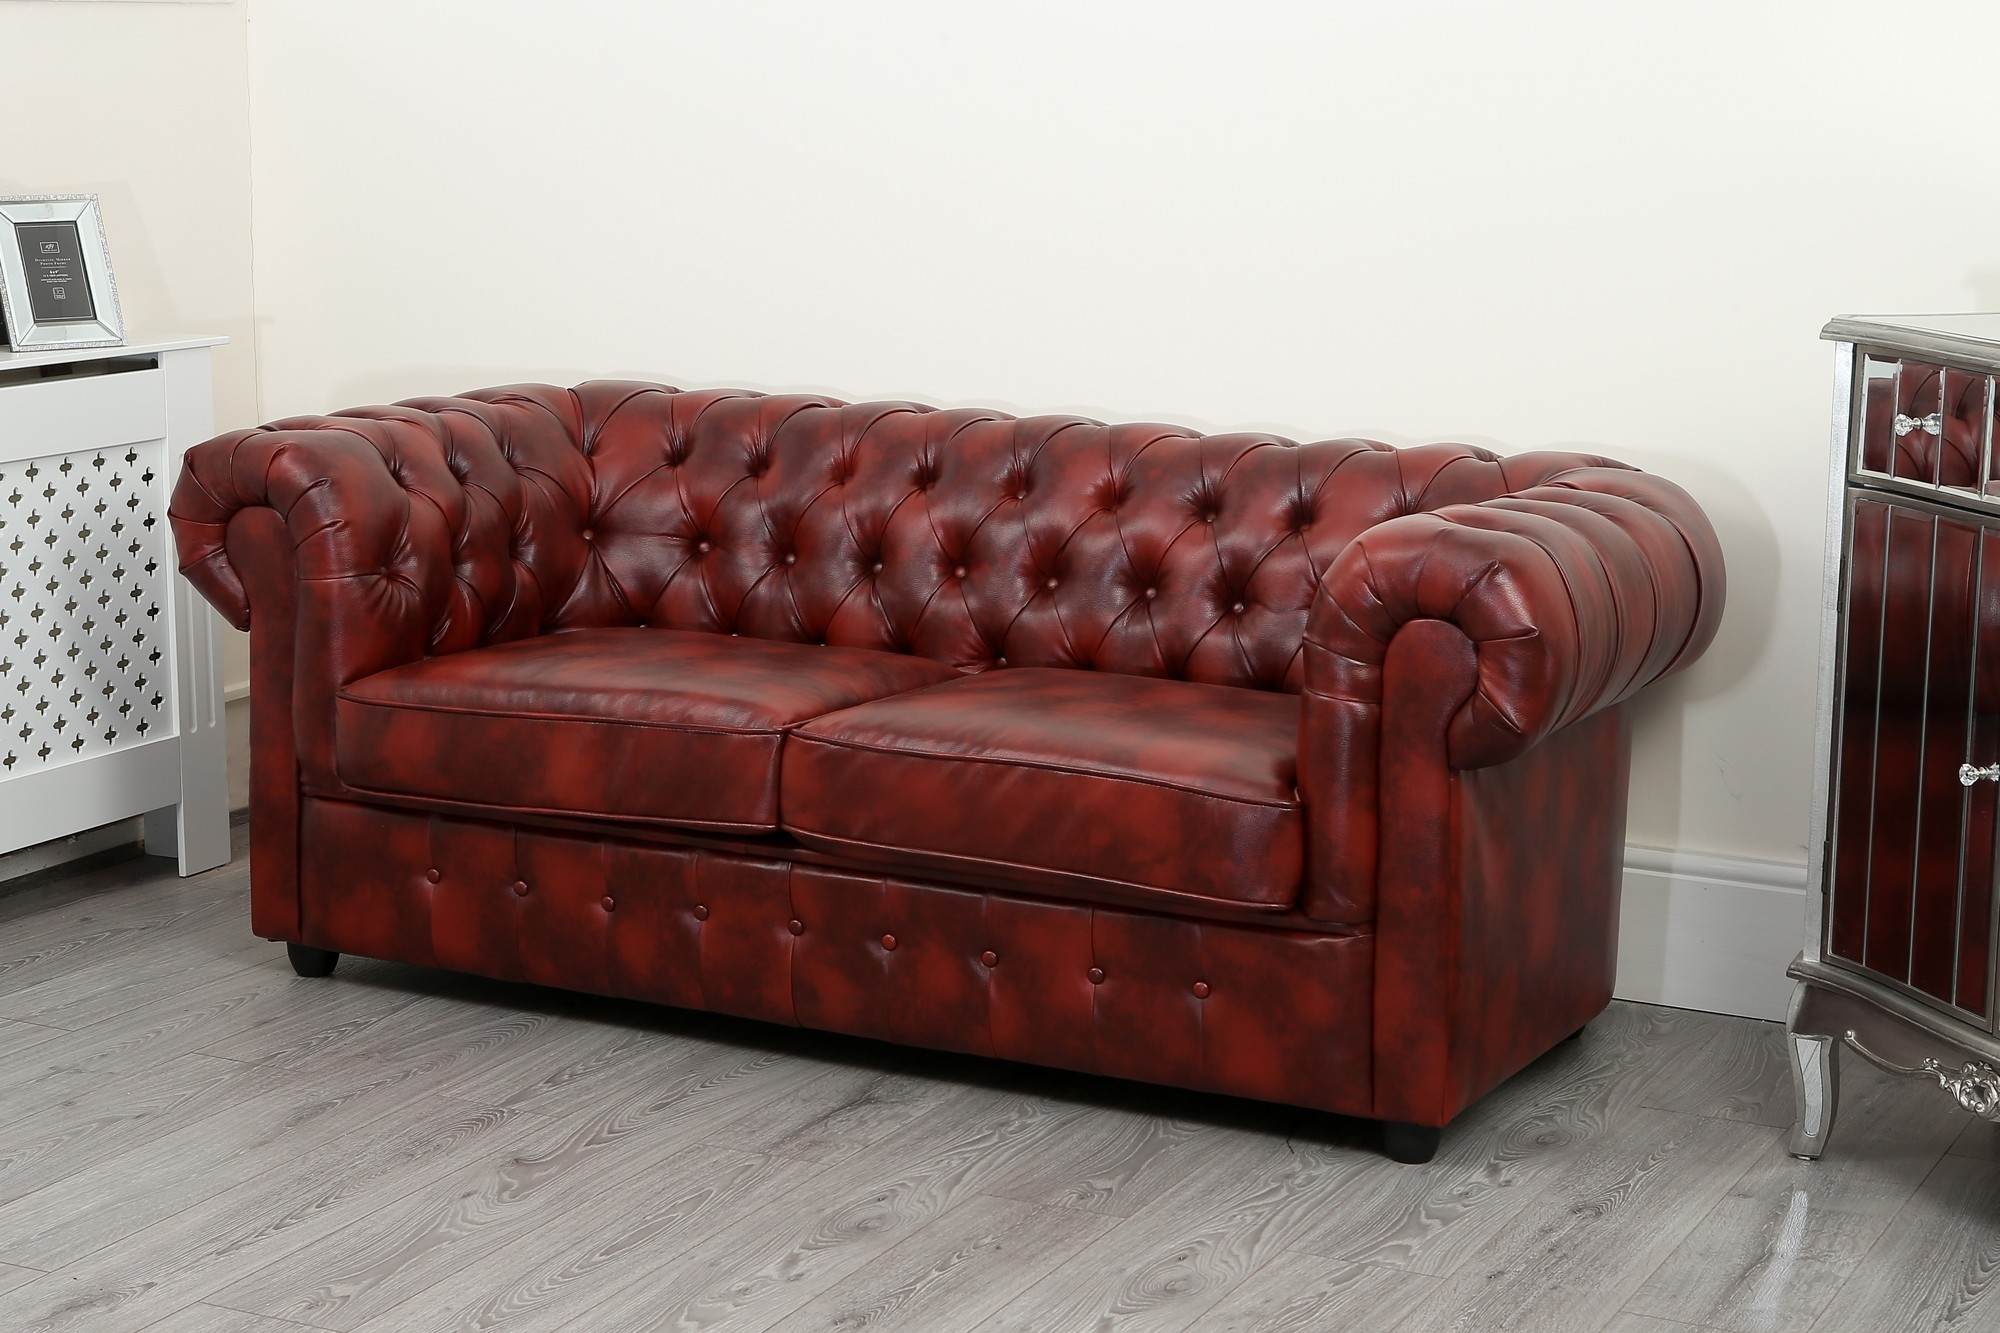 6 Seater Corner Sofa Chesterfield Oxblood Red Chesterfield 3 Seater Abreo Home Furniture